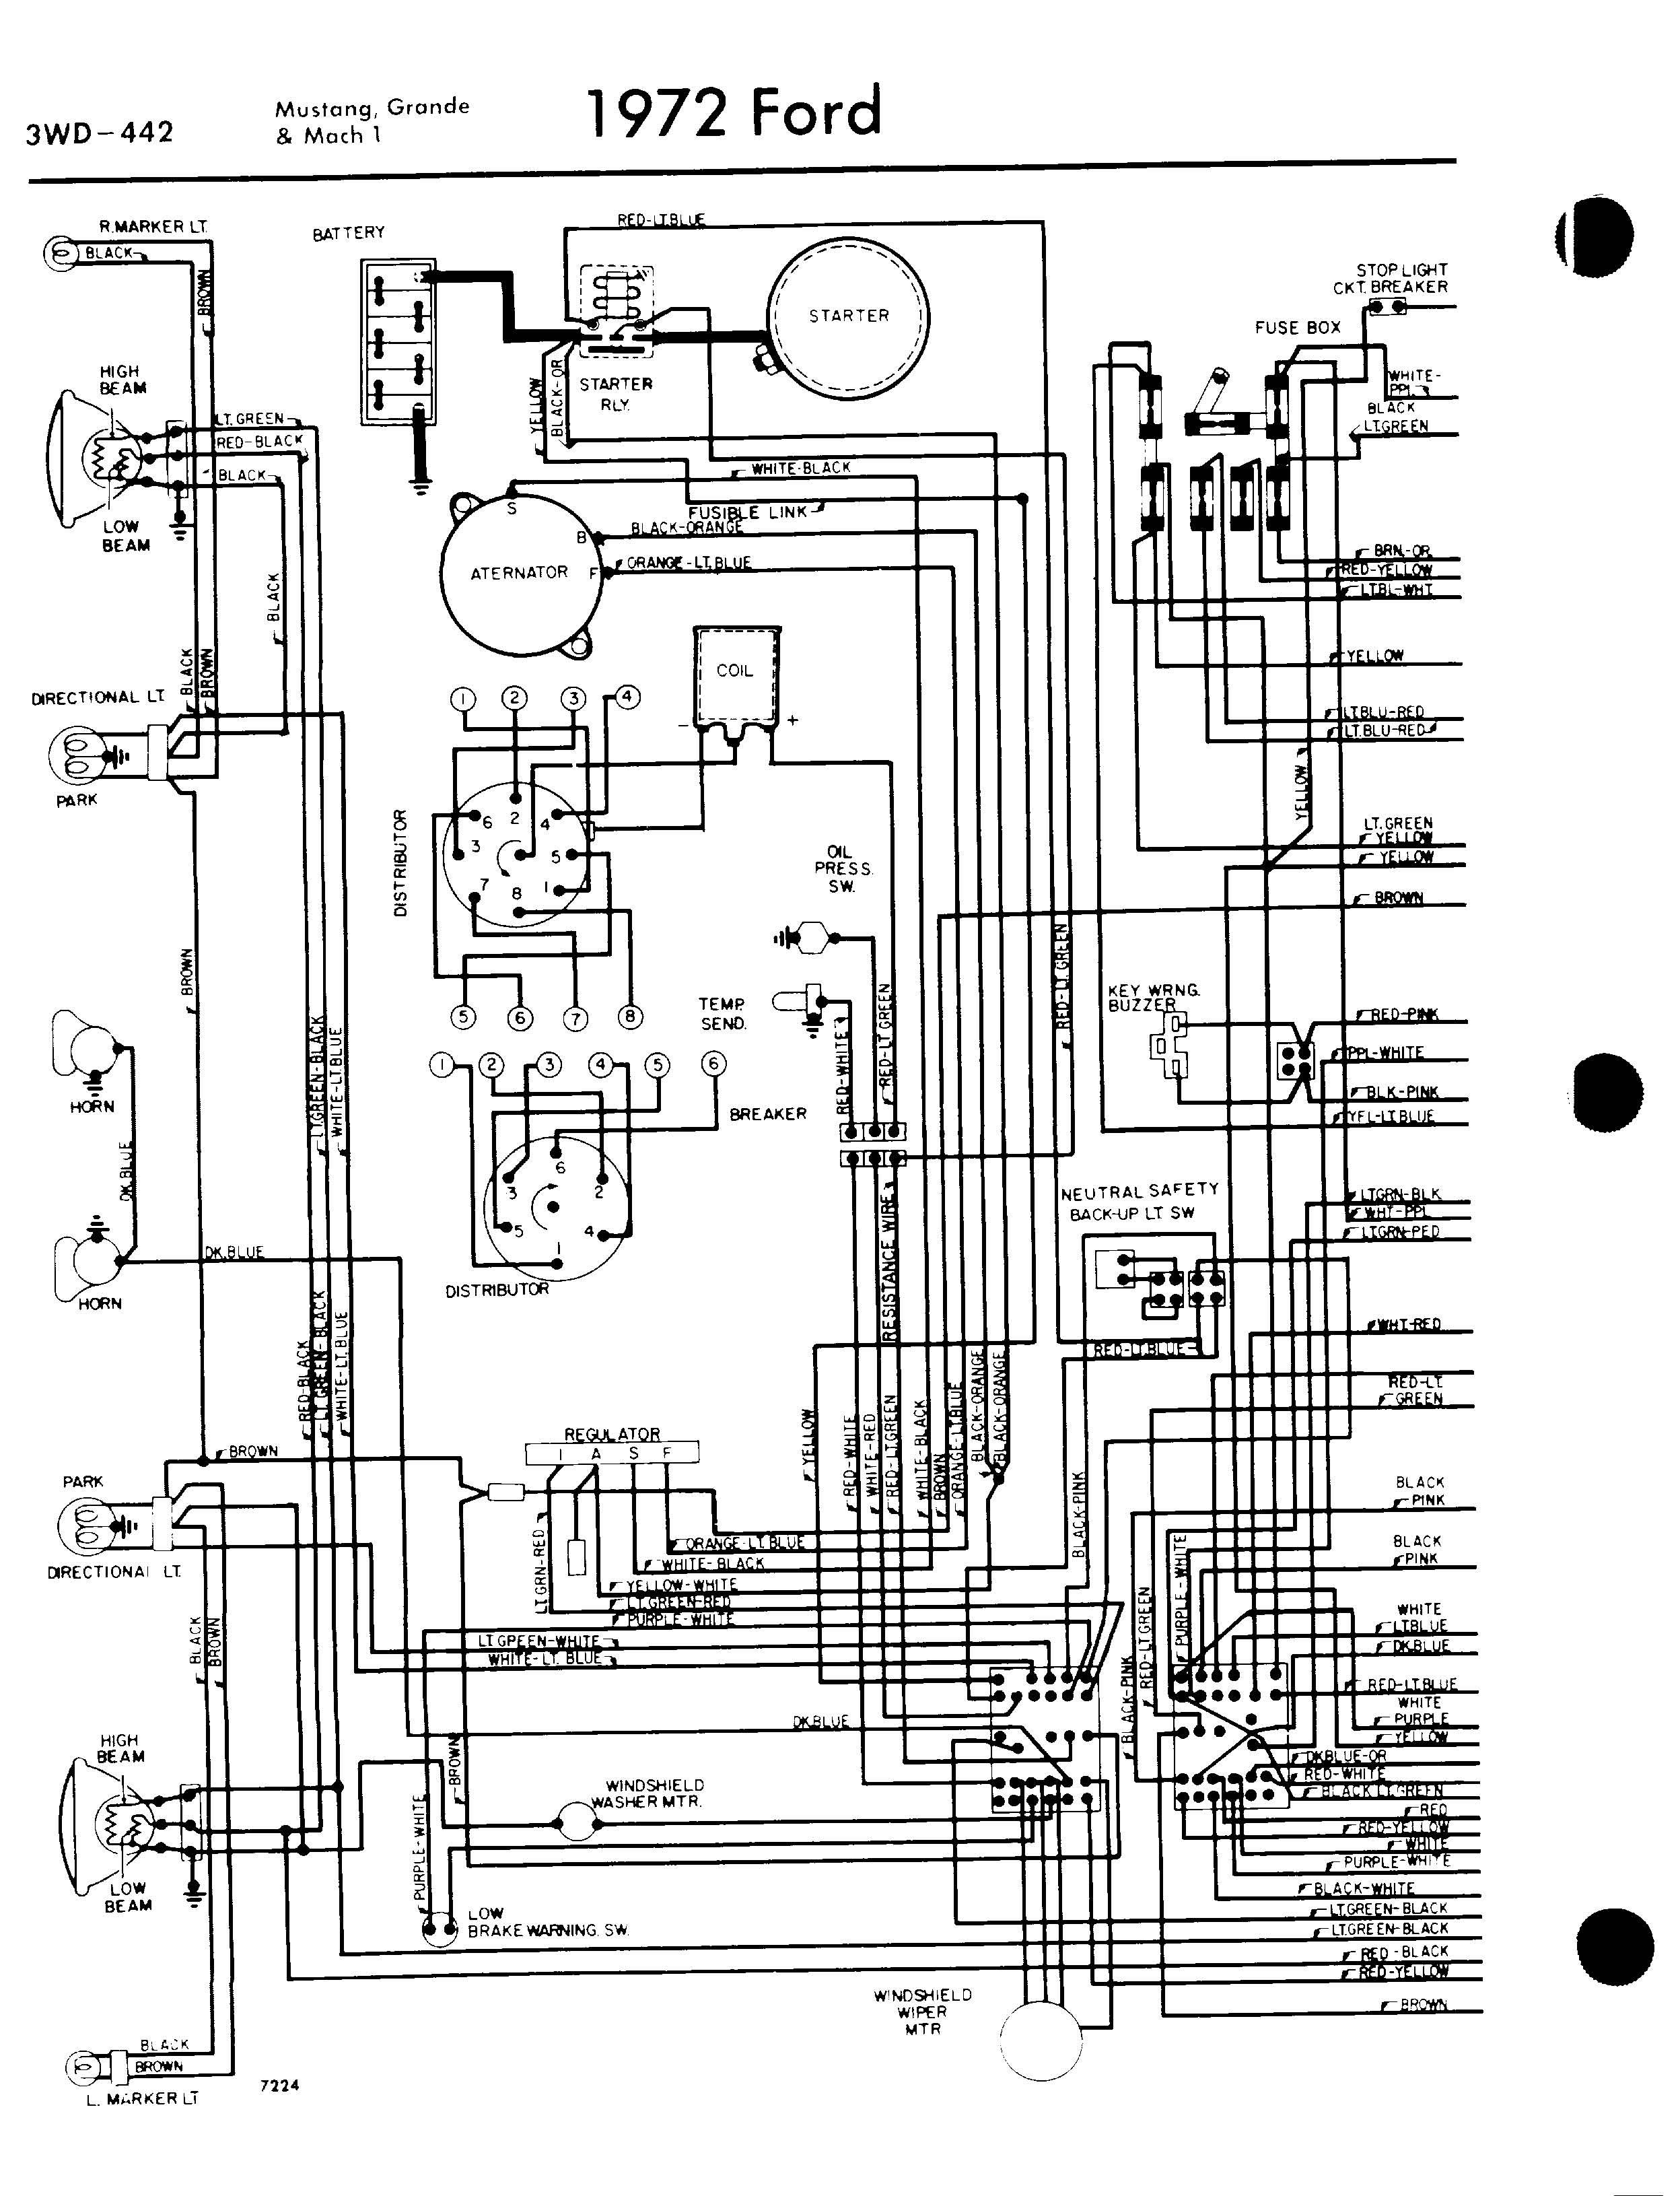 Awe Inspiring Harness Diagram Ford Mustang Ignition Switch Wiring Diagram 1973 Wiring 101 Vieworaxxcnl